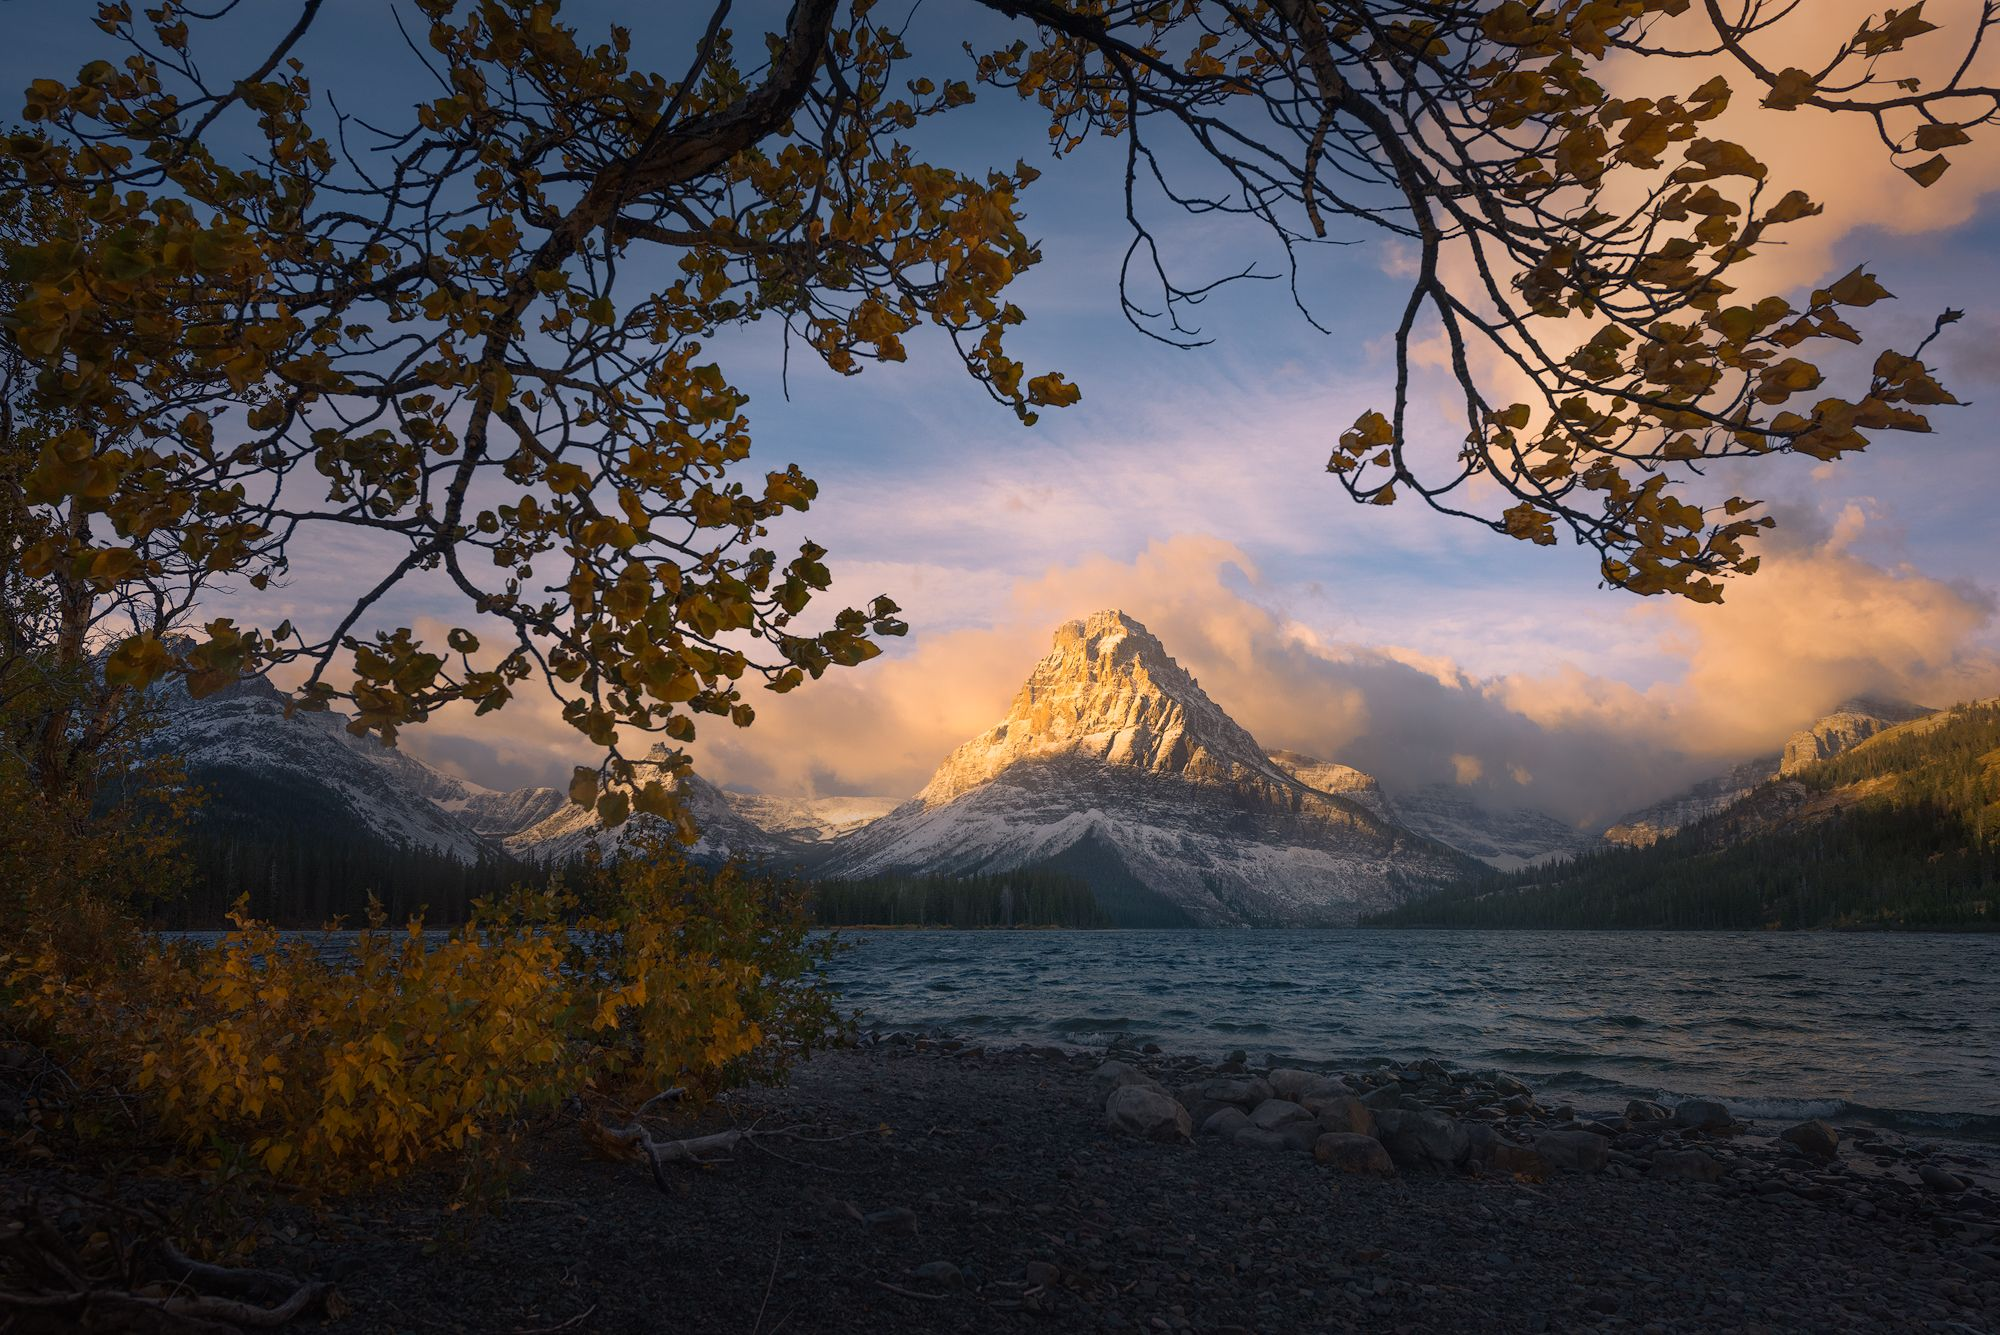 Sinopah Mountain In Glacier National Park Framed By Peak Fall Foliage An Incredible Moment In Nature Oc Glacier National Park Grand Landscape National Parks